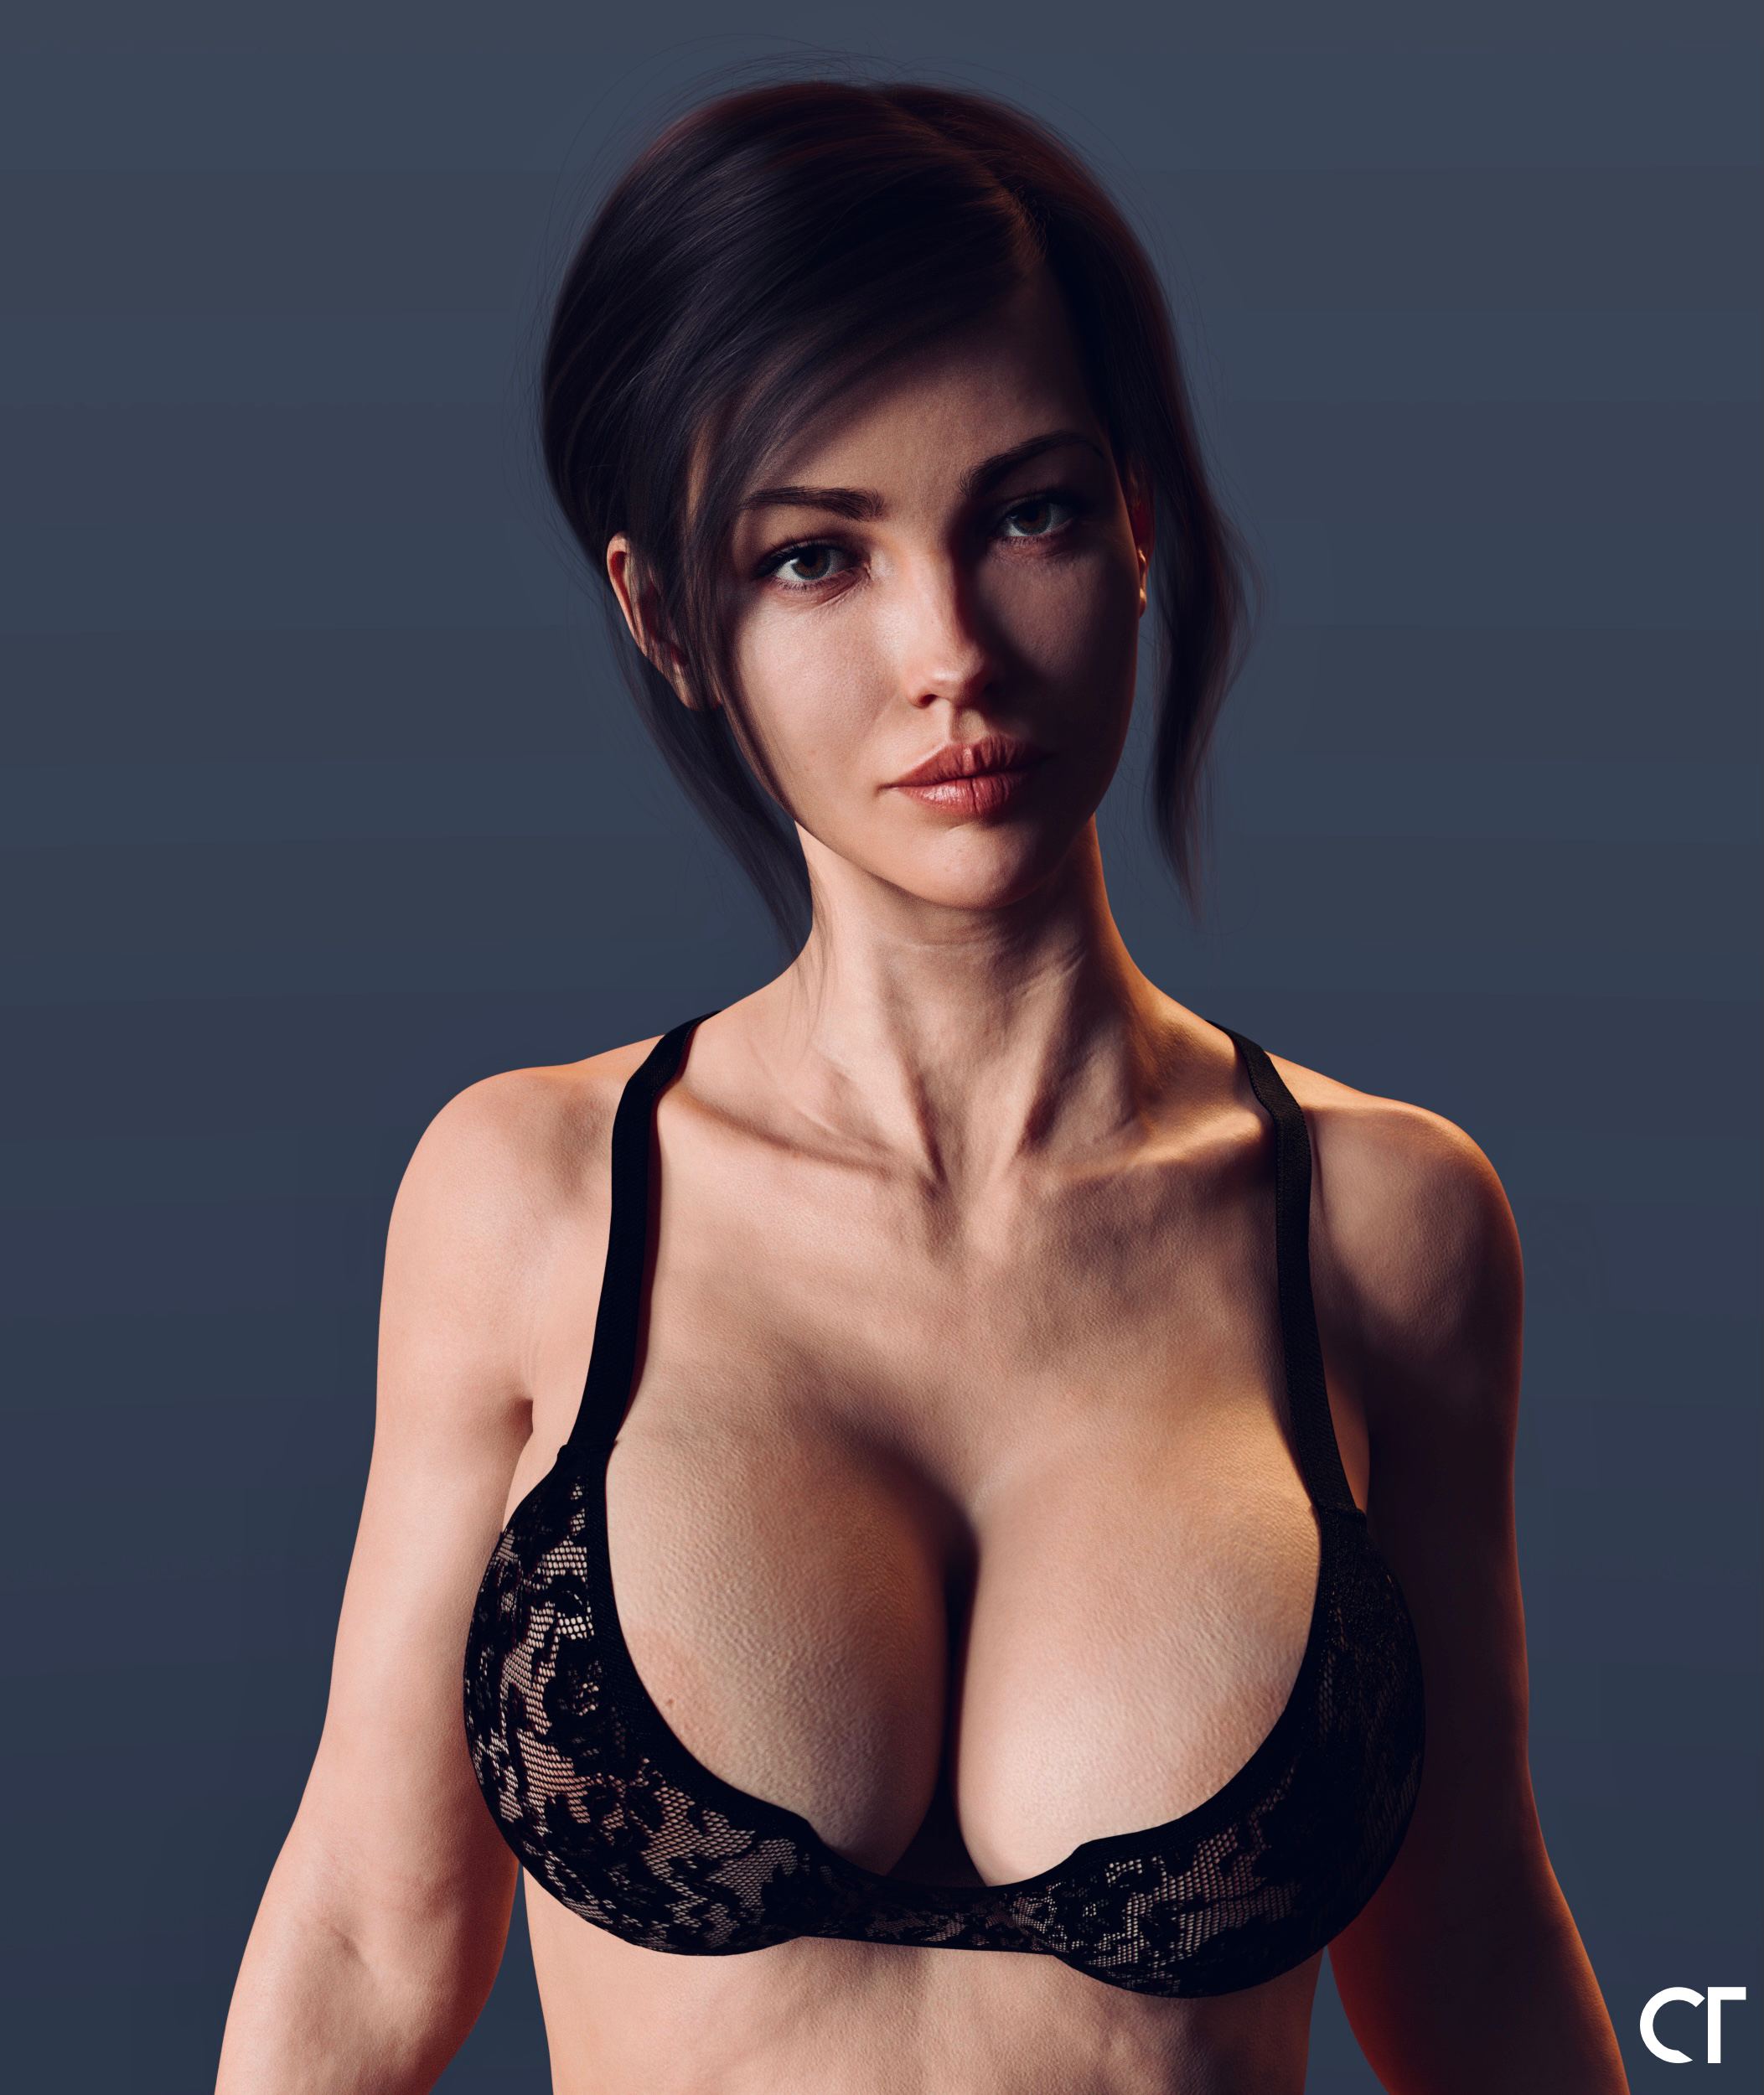 AVA (with further improvements)